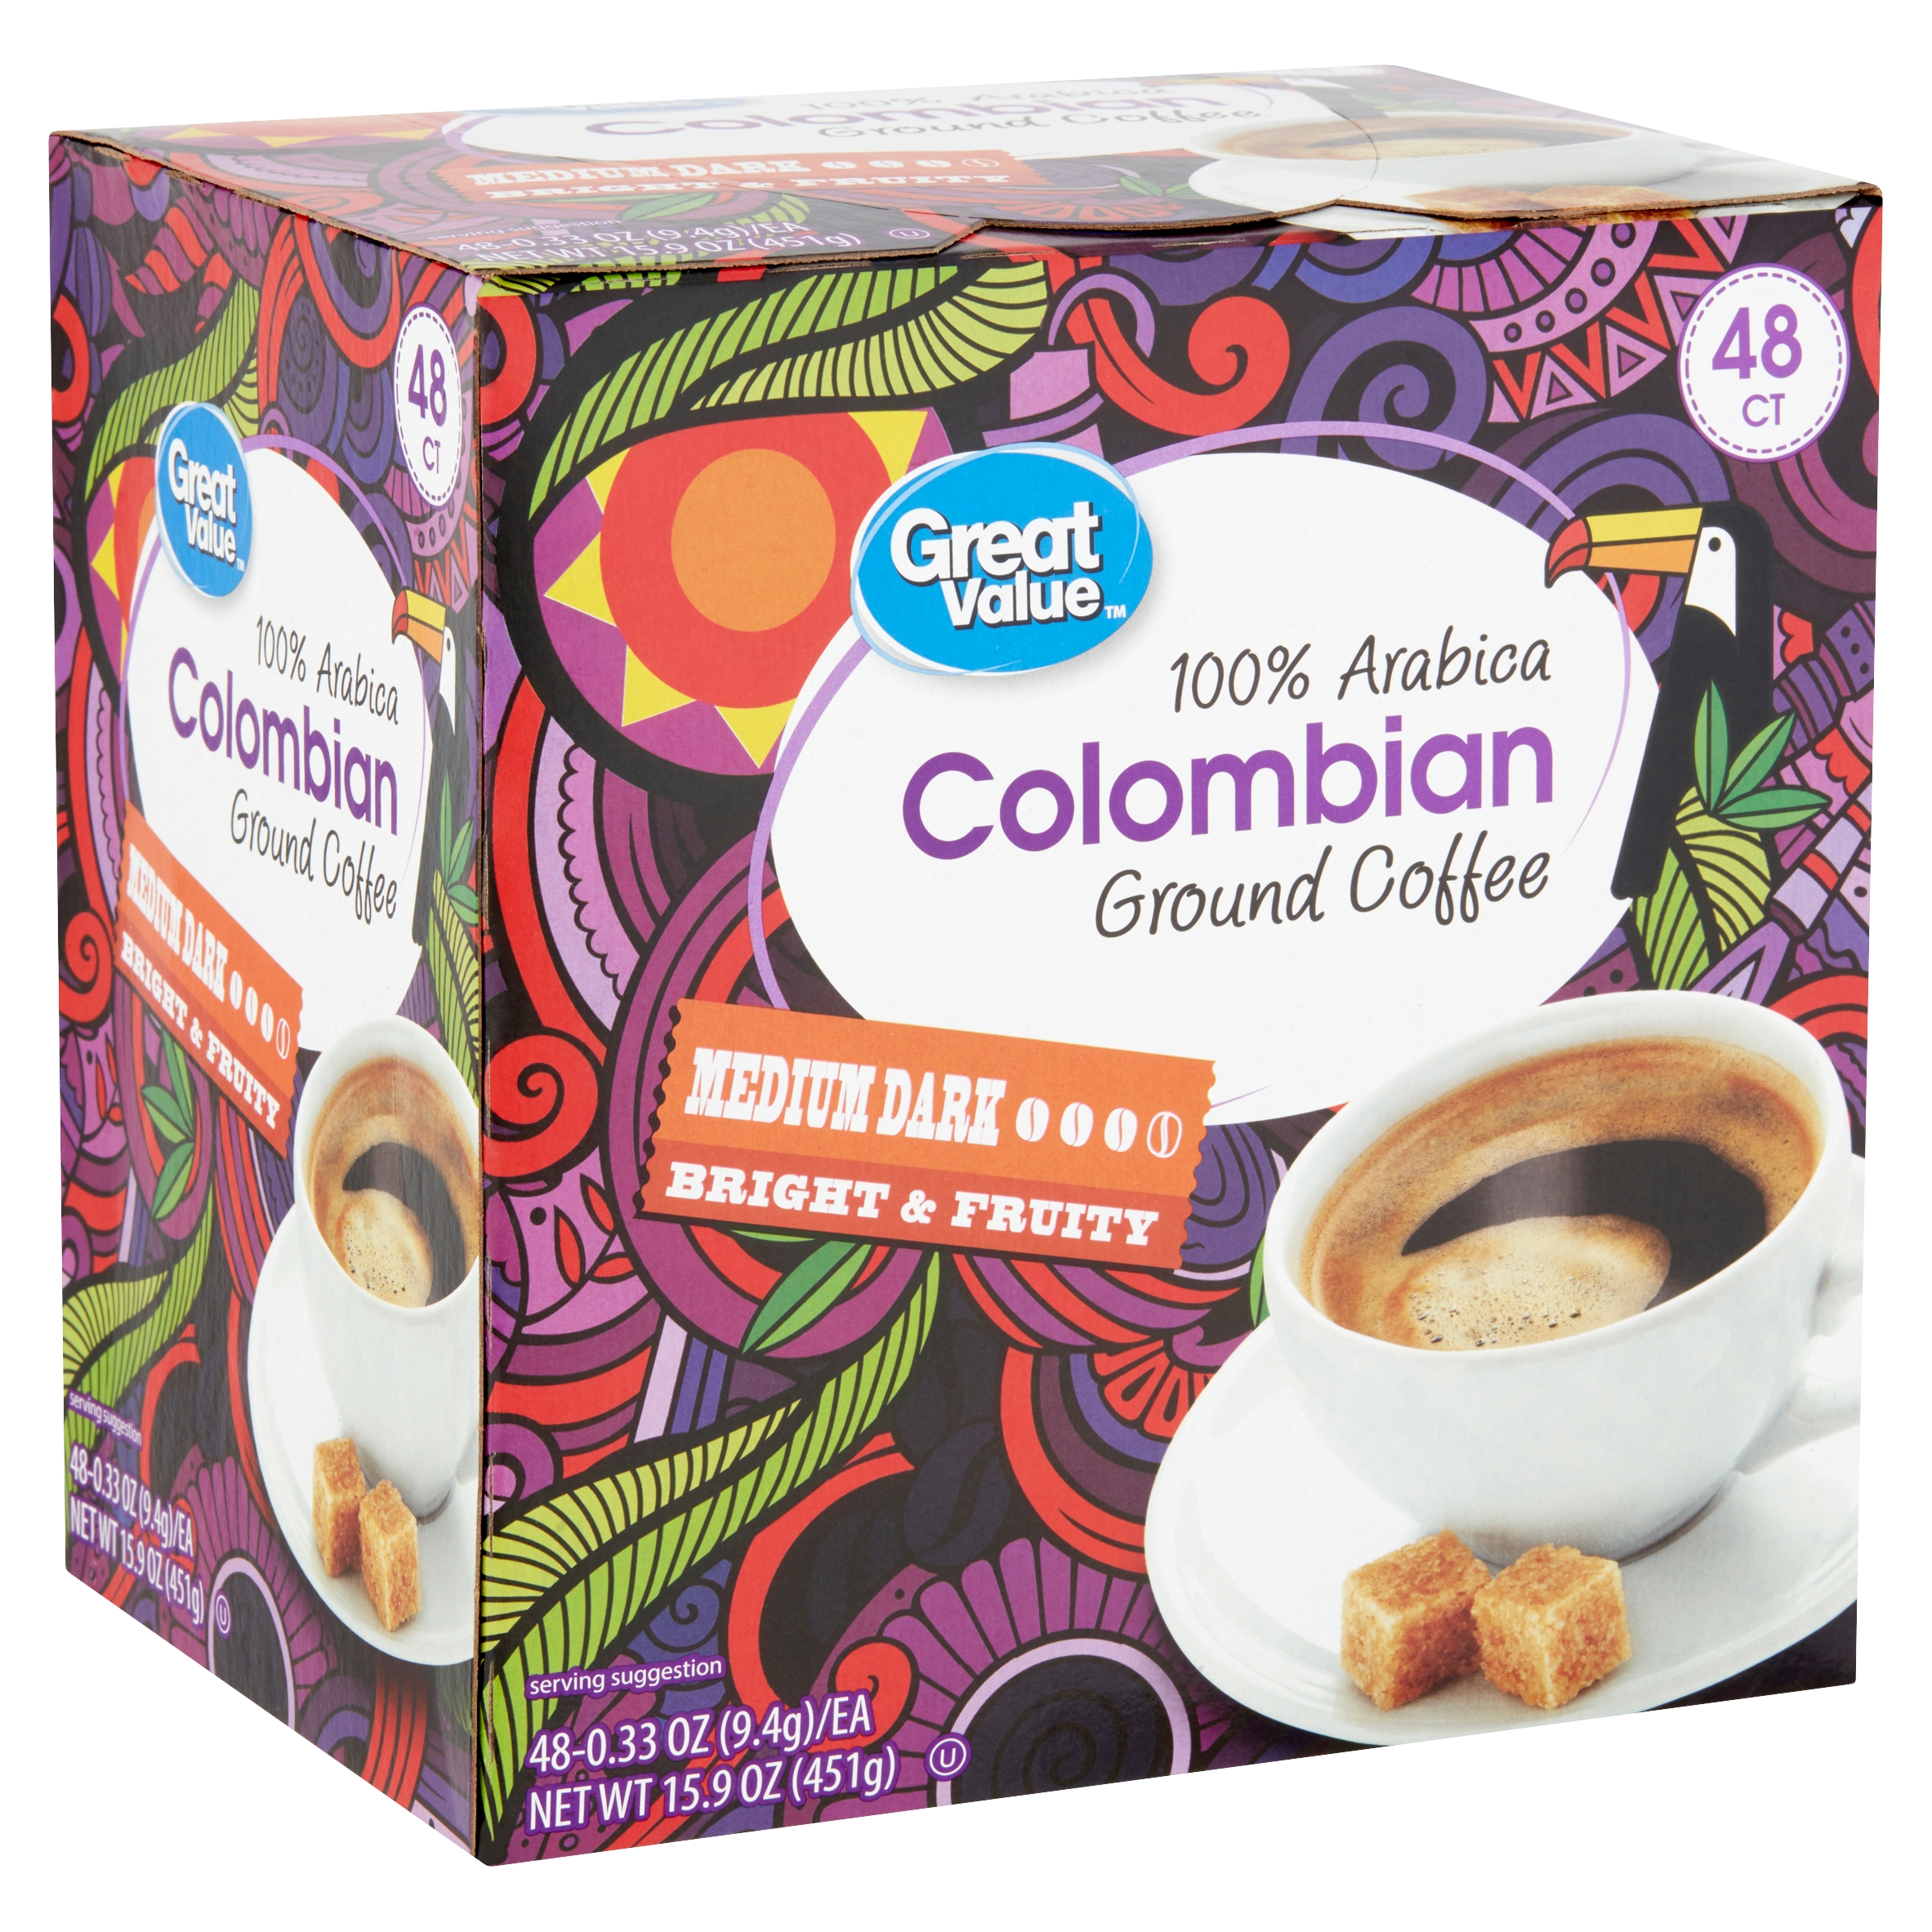 Great Value 100% Arabica Colombian Medium Dark Ground Coffee, 0.33 oz, 48 count